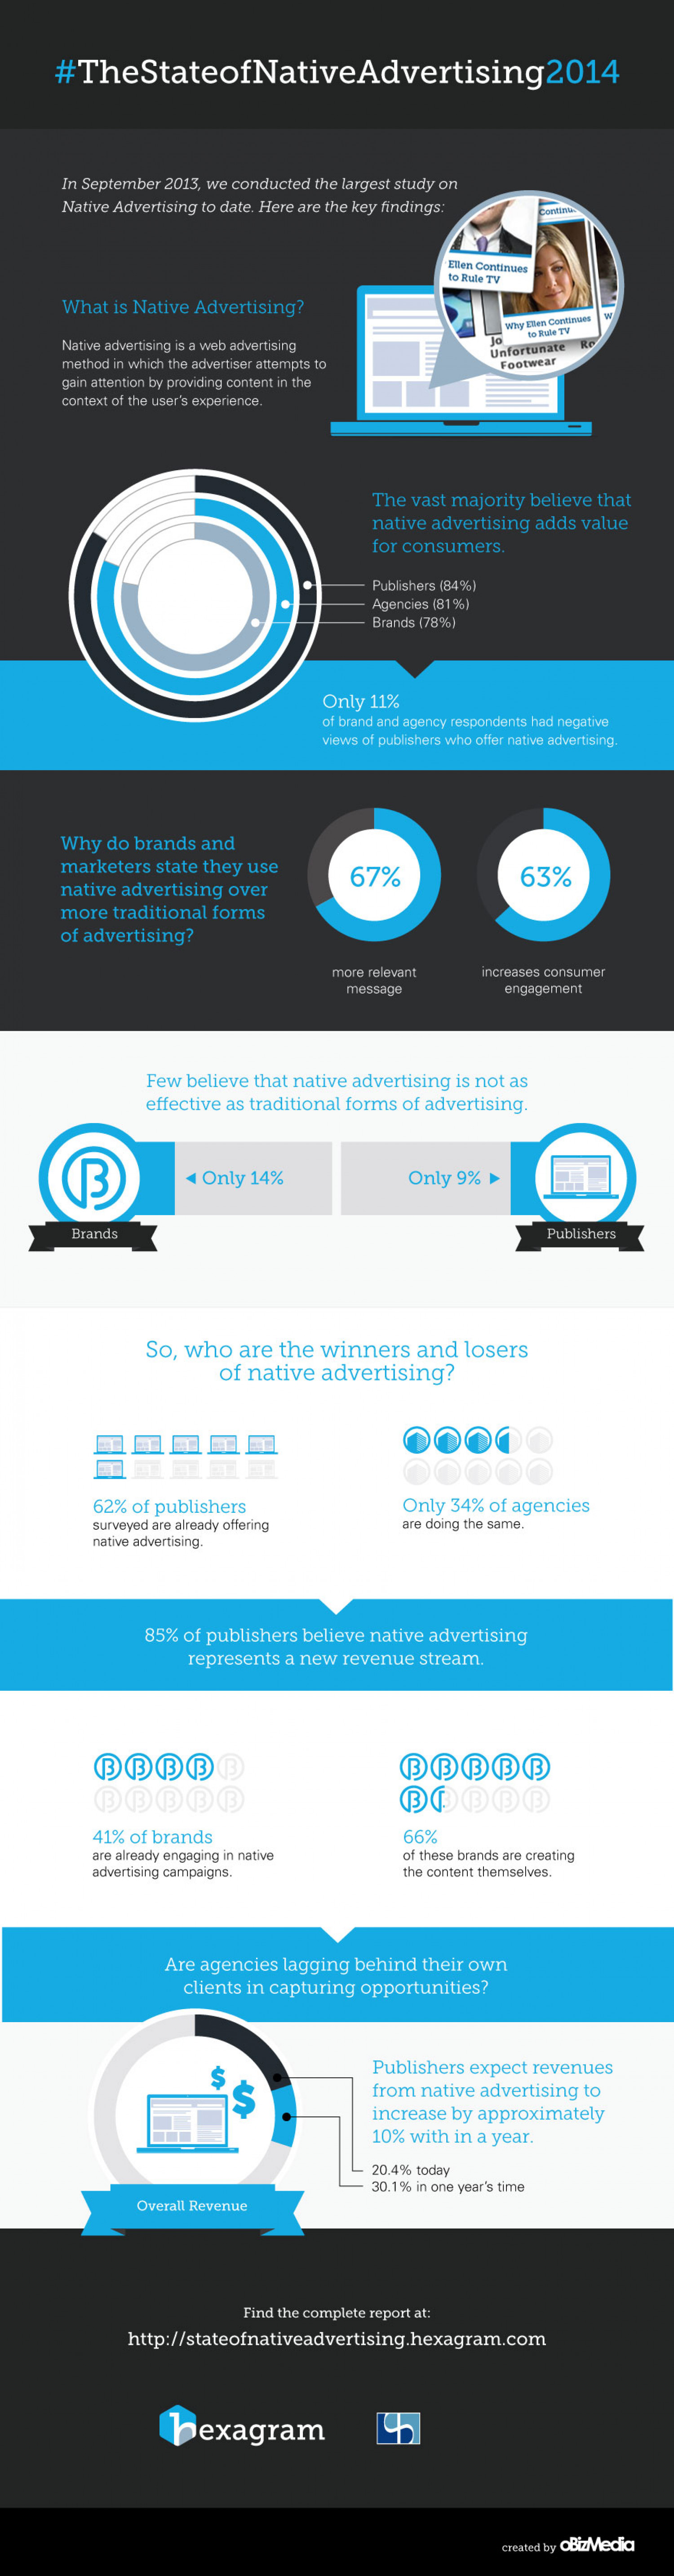 The State of Native Advertising 2014 Infographic